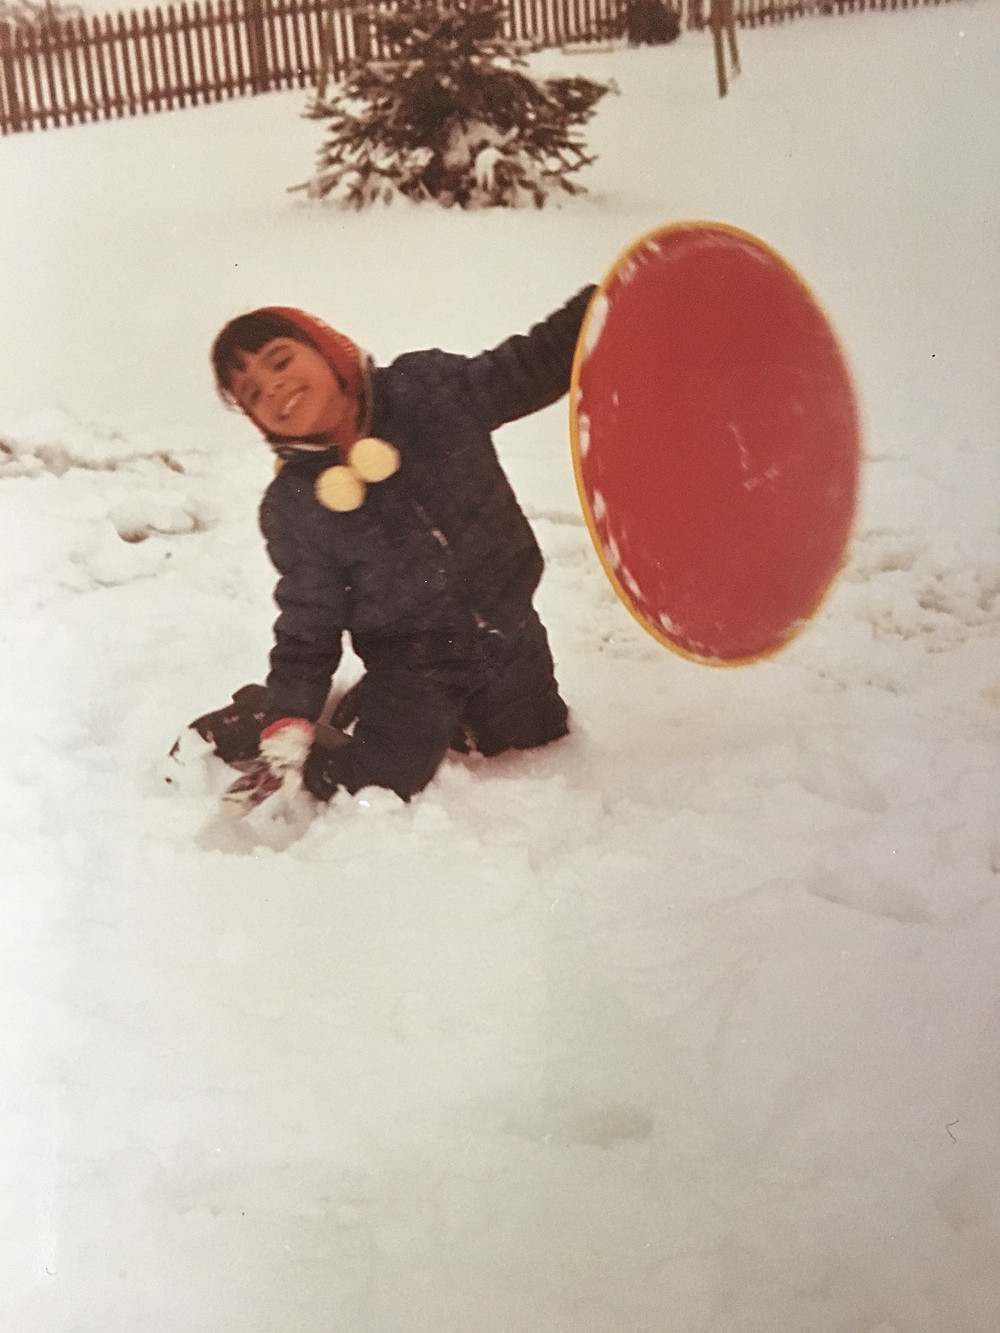 Me, back when I was weather-proof.